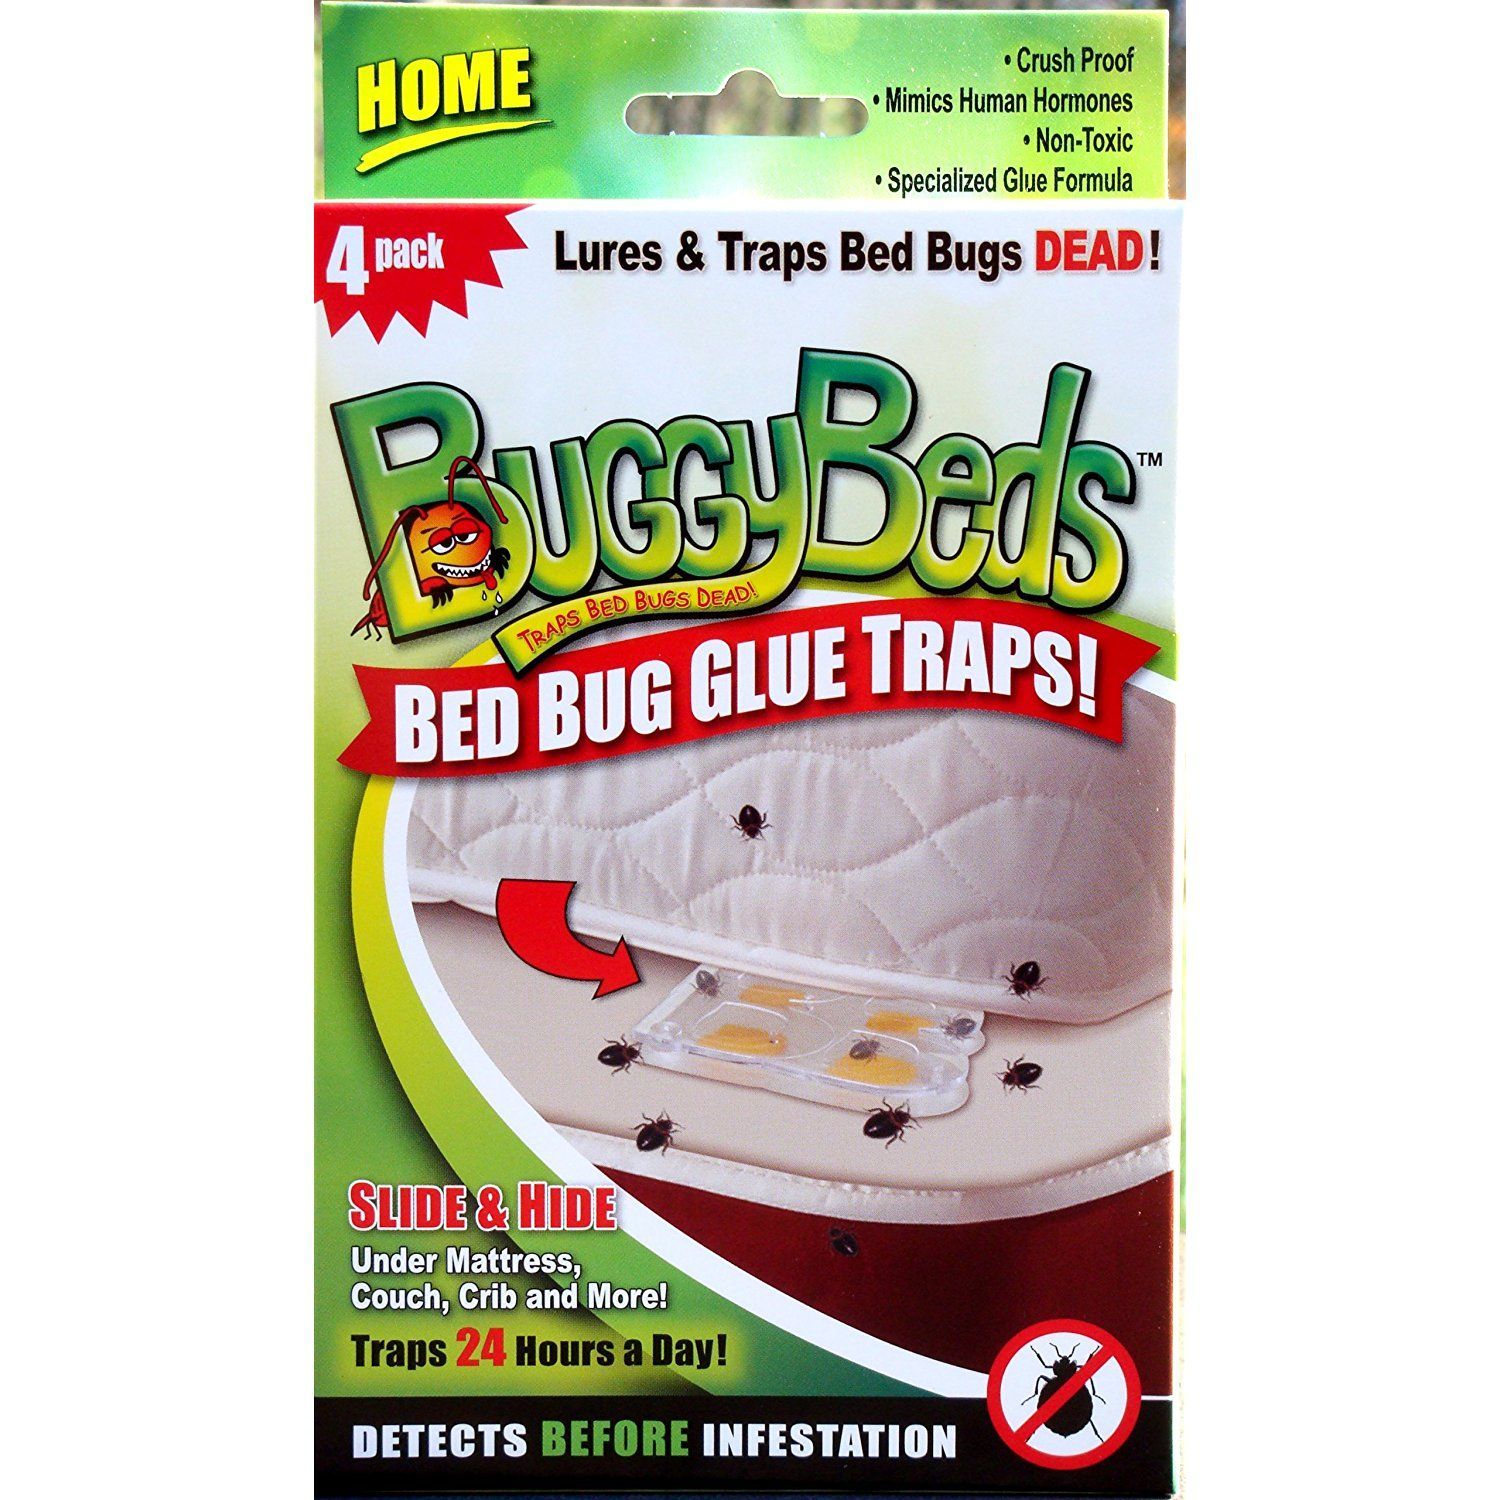 Bed Bug Trap BuggyBeds Home Glue Traps (4 Pack) Detect